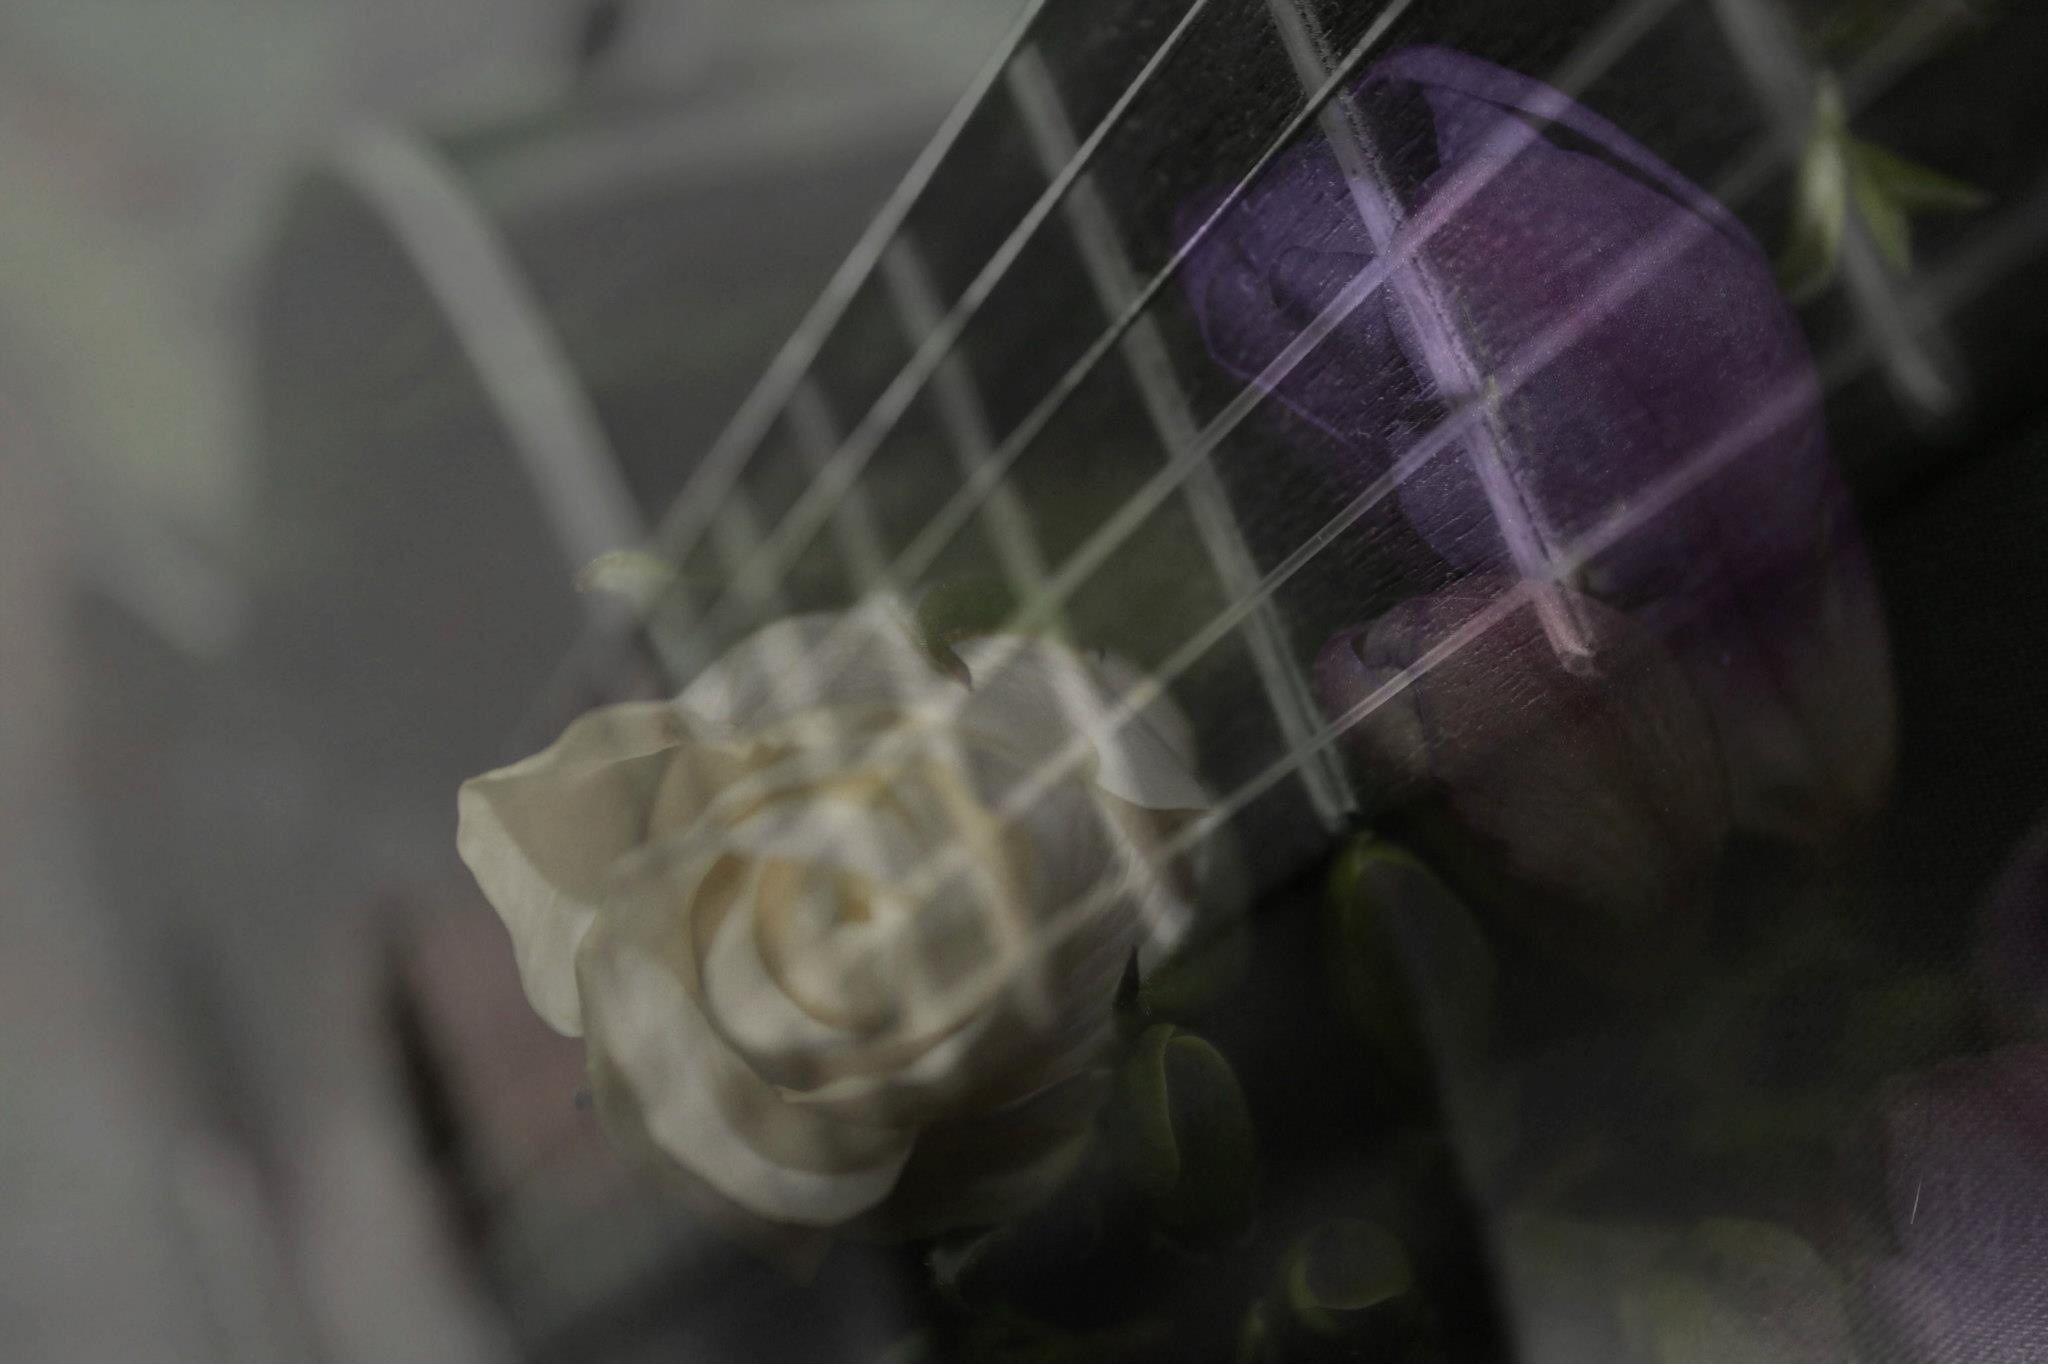 Double Exposure Musical Petals by Charlie Greaves